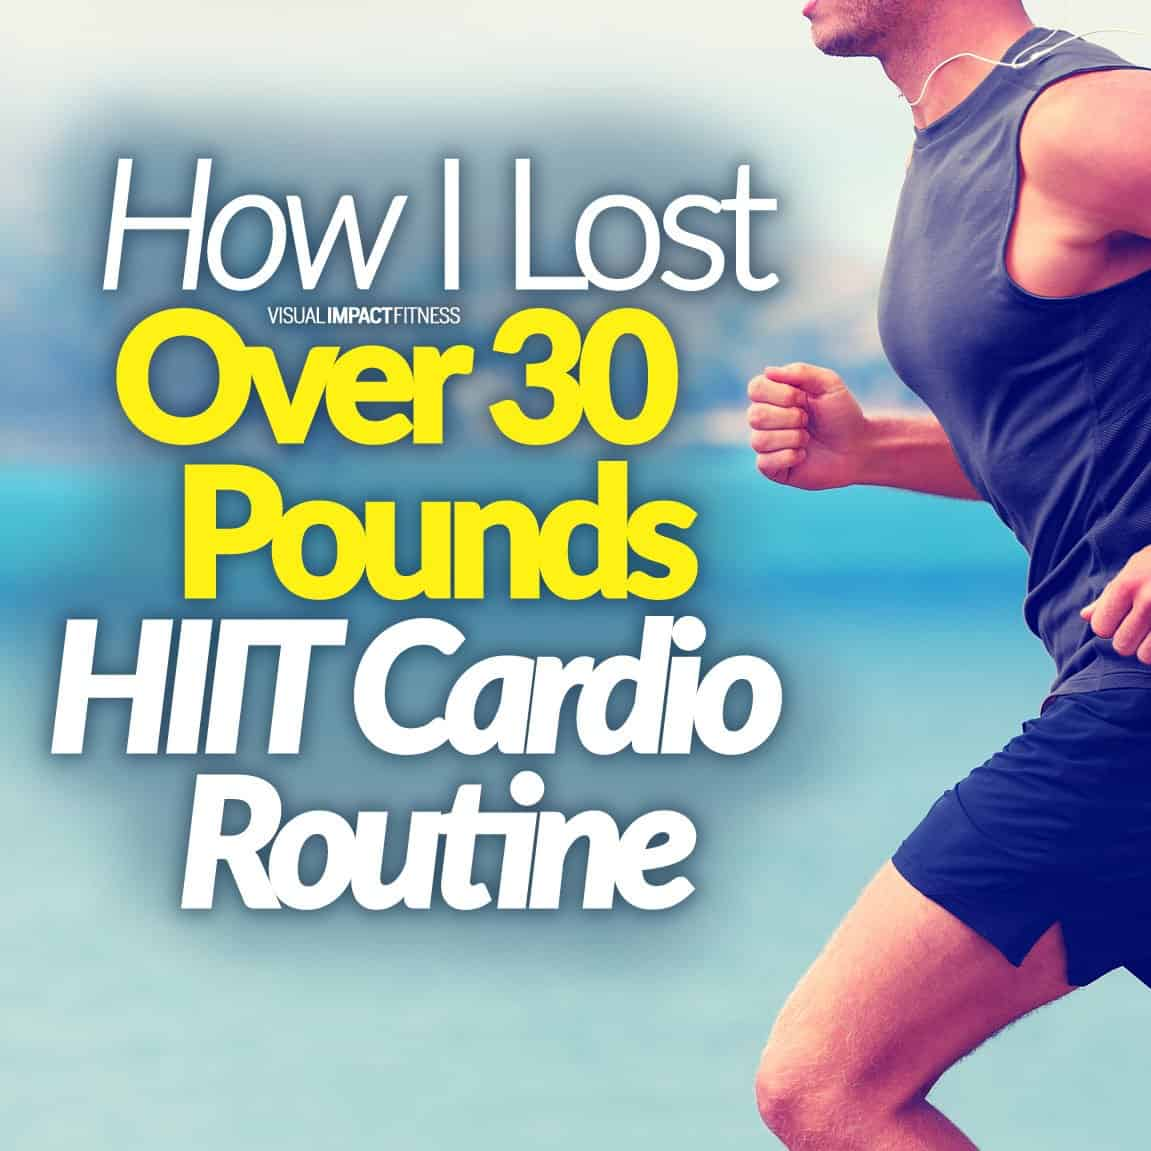 How I Lost Over 30 Pounds HIIT Cardio Routine